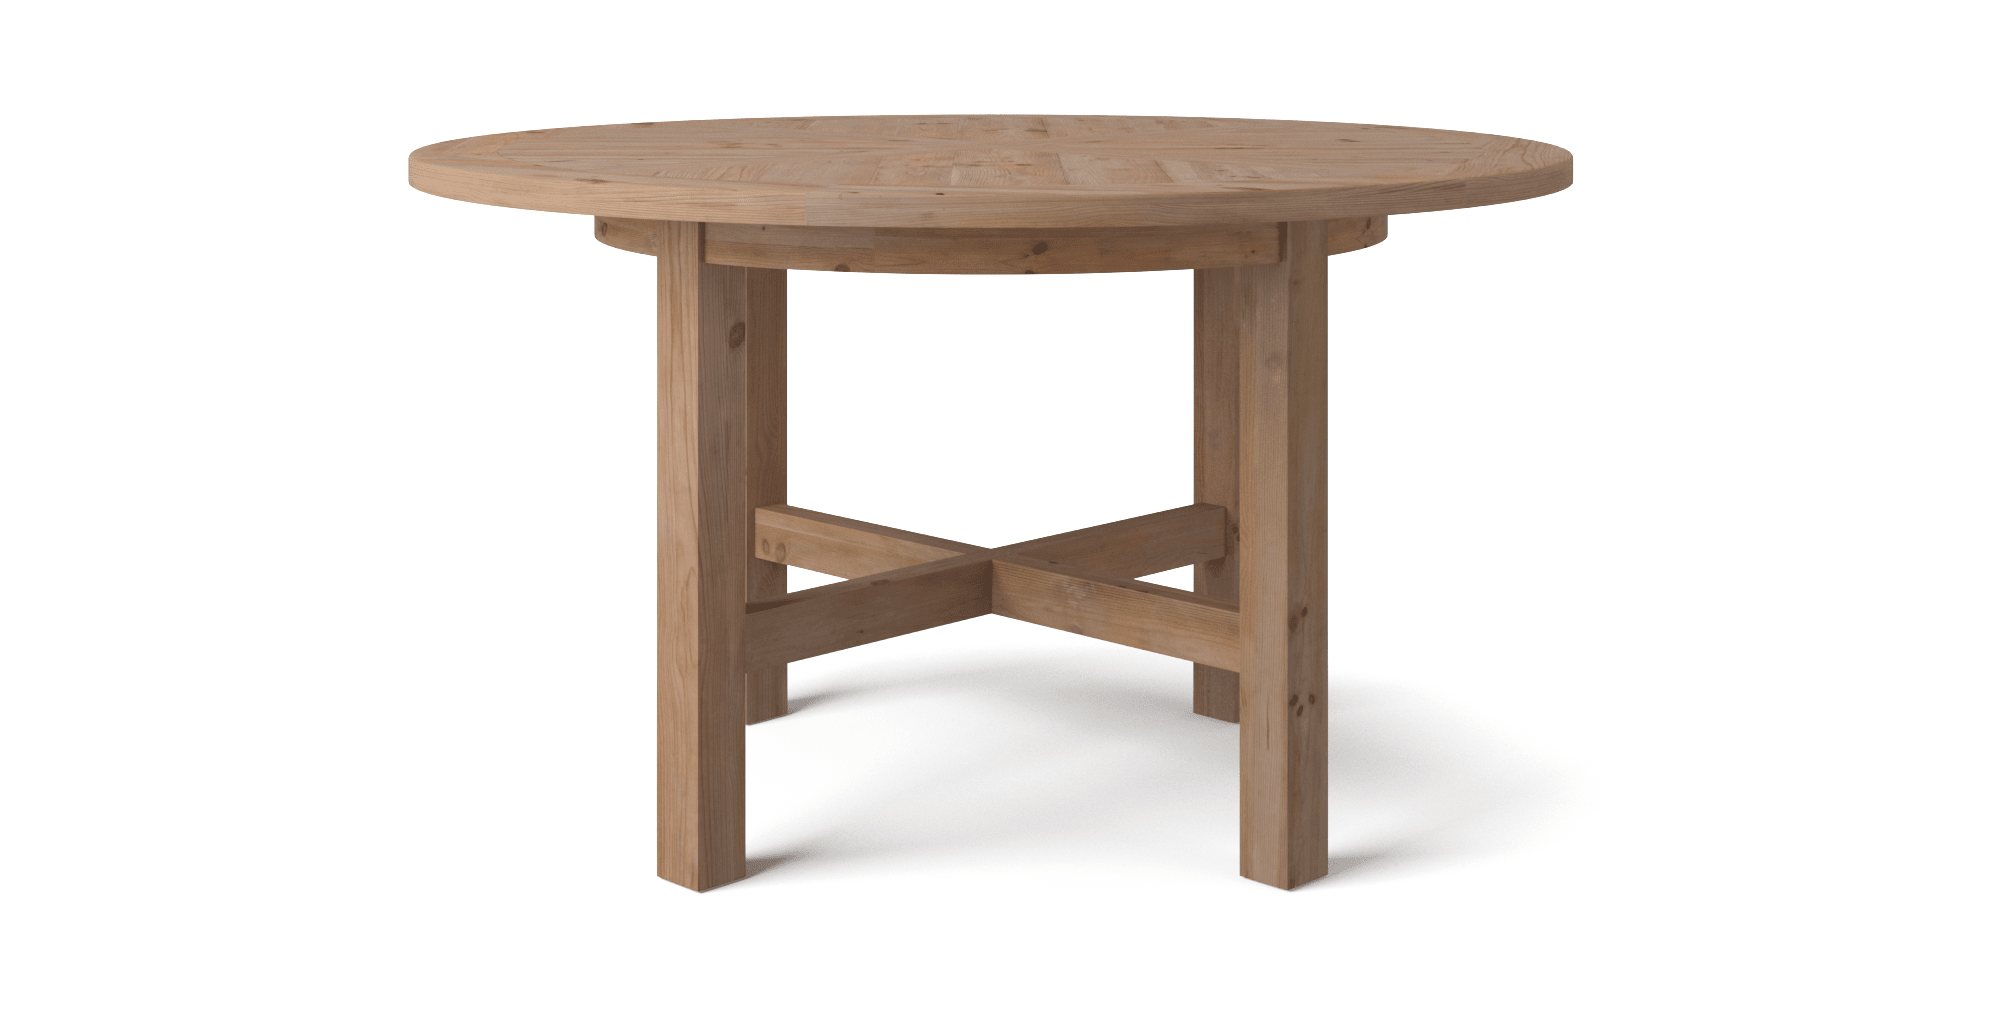 Outdoor round dining table - Chelmsford Round Dining Table Natural Pine Change